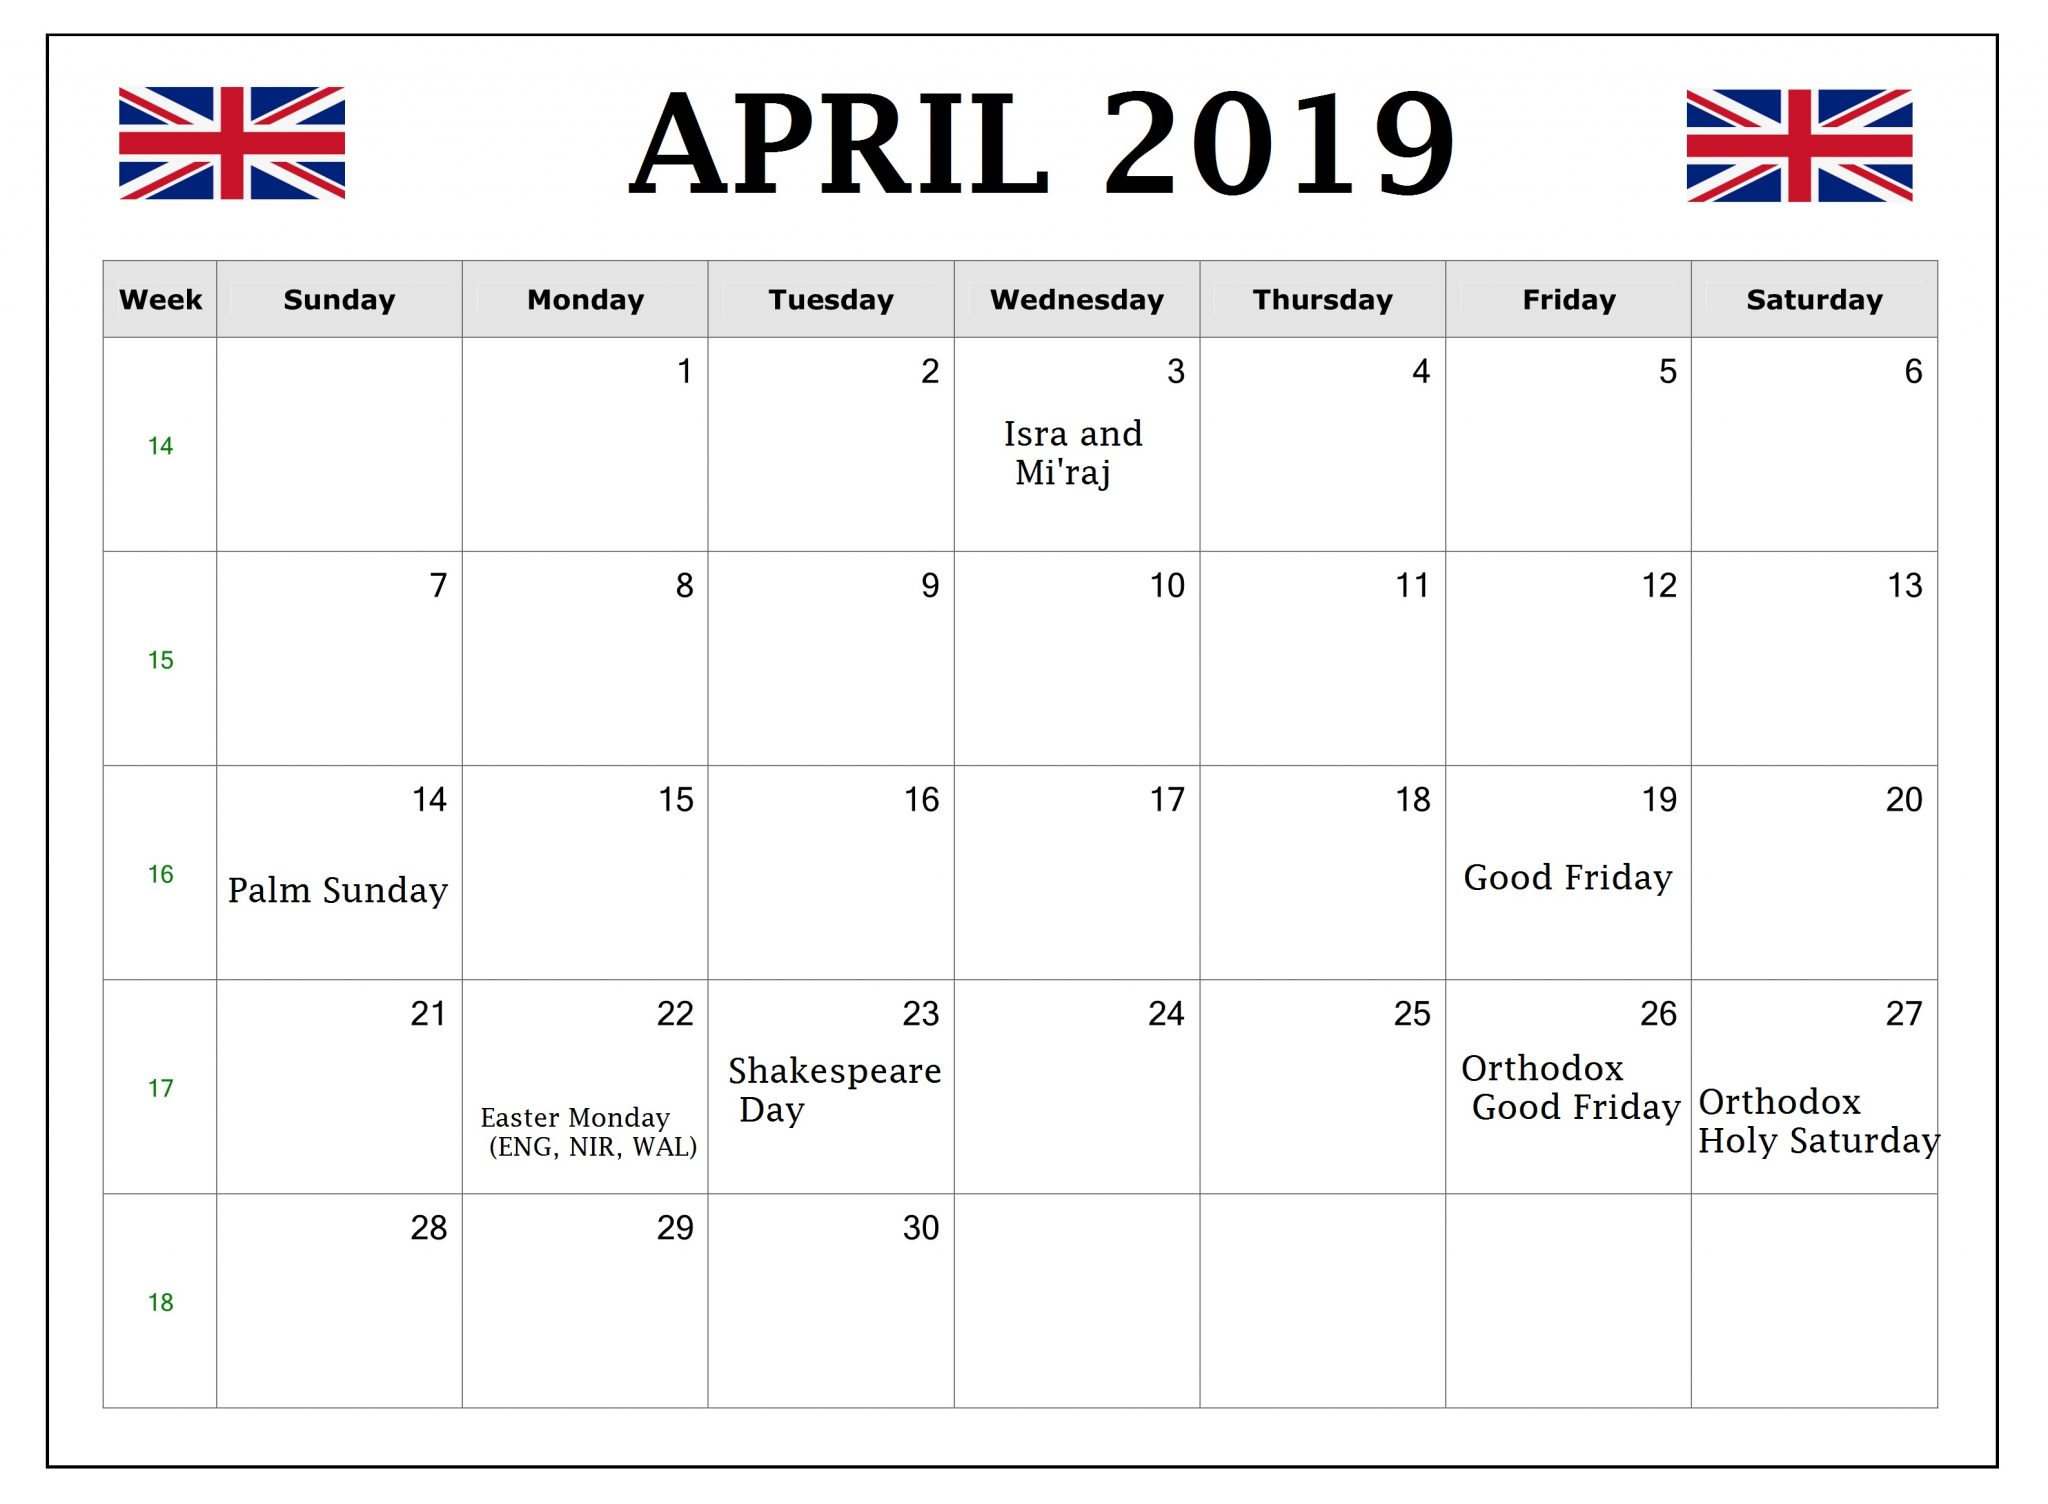 April 2019 Calendar United Kingdom